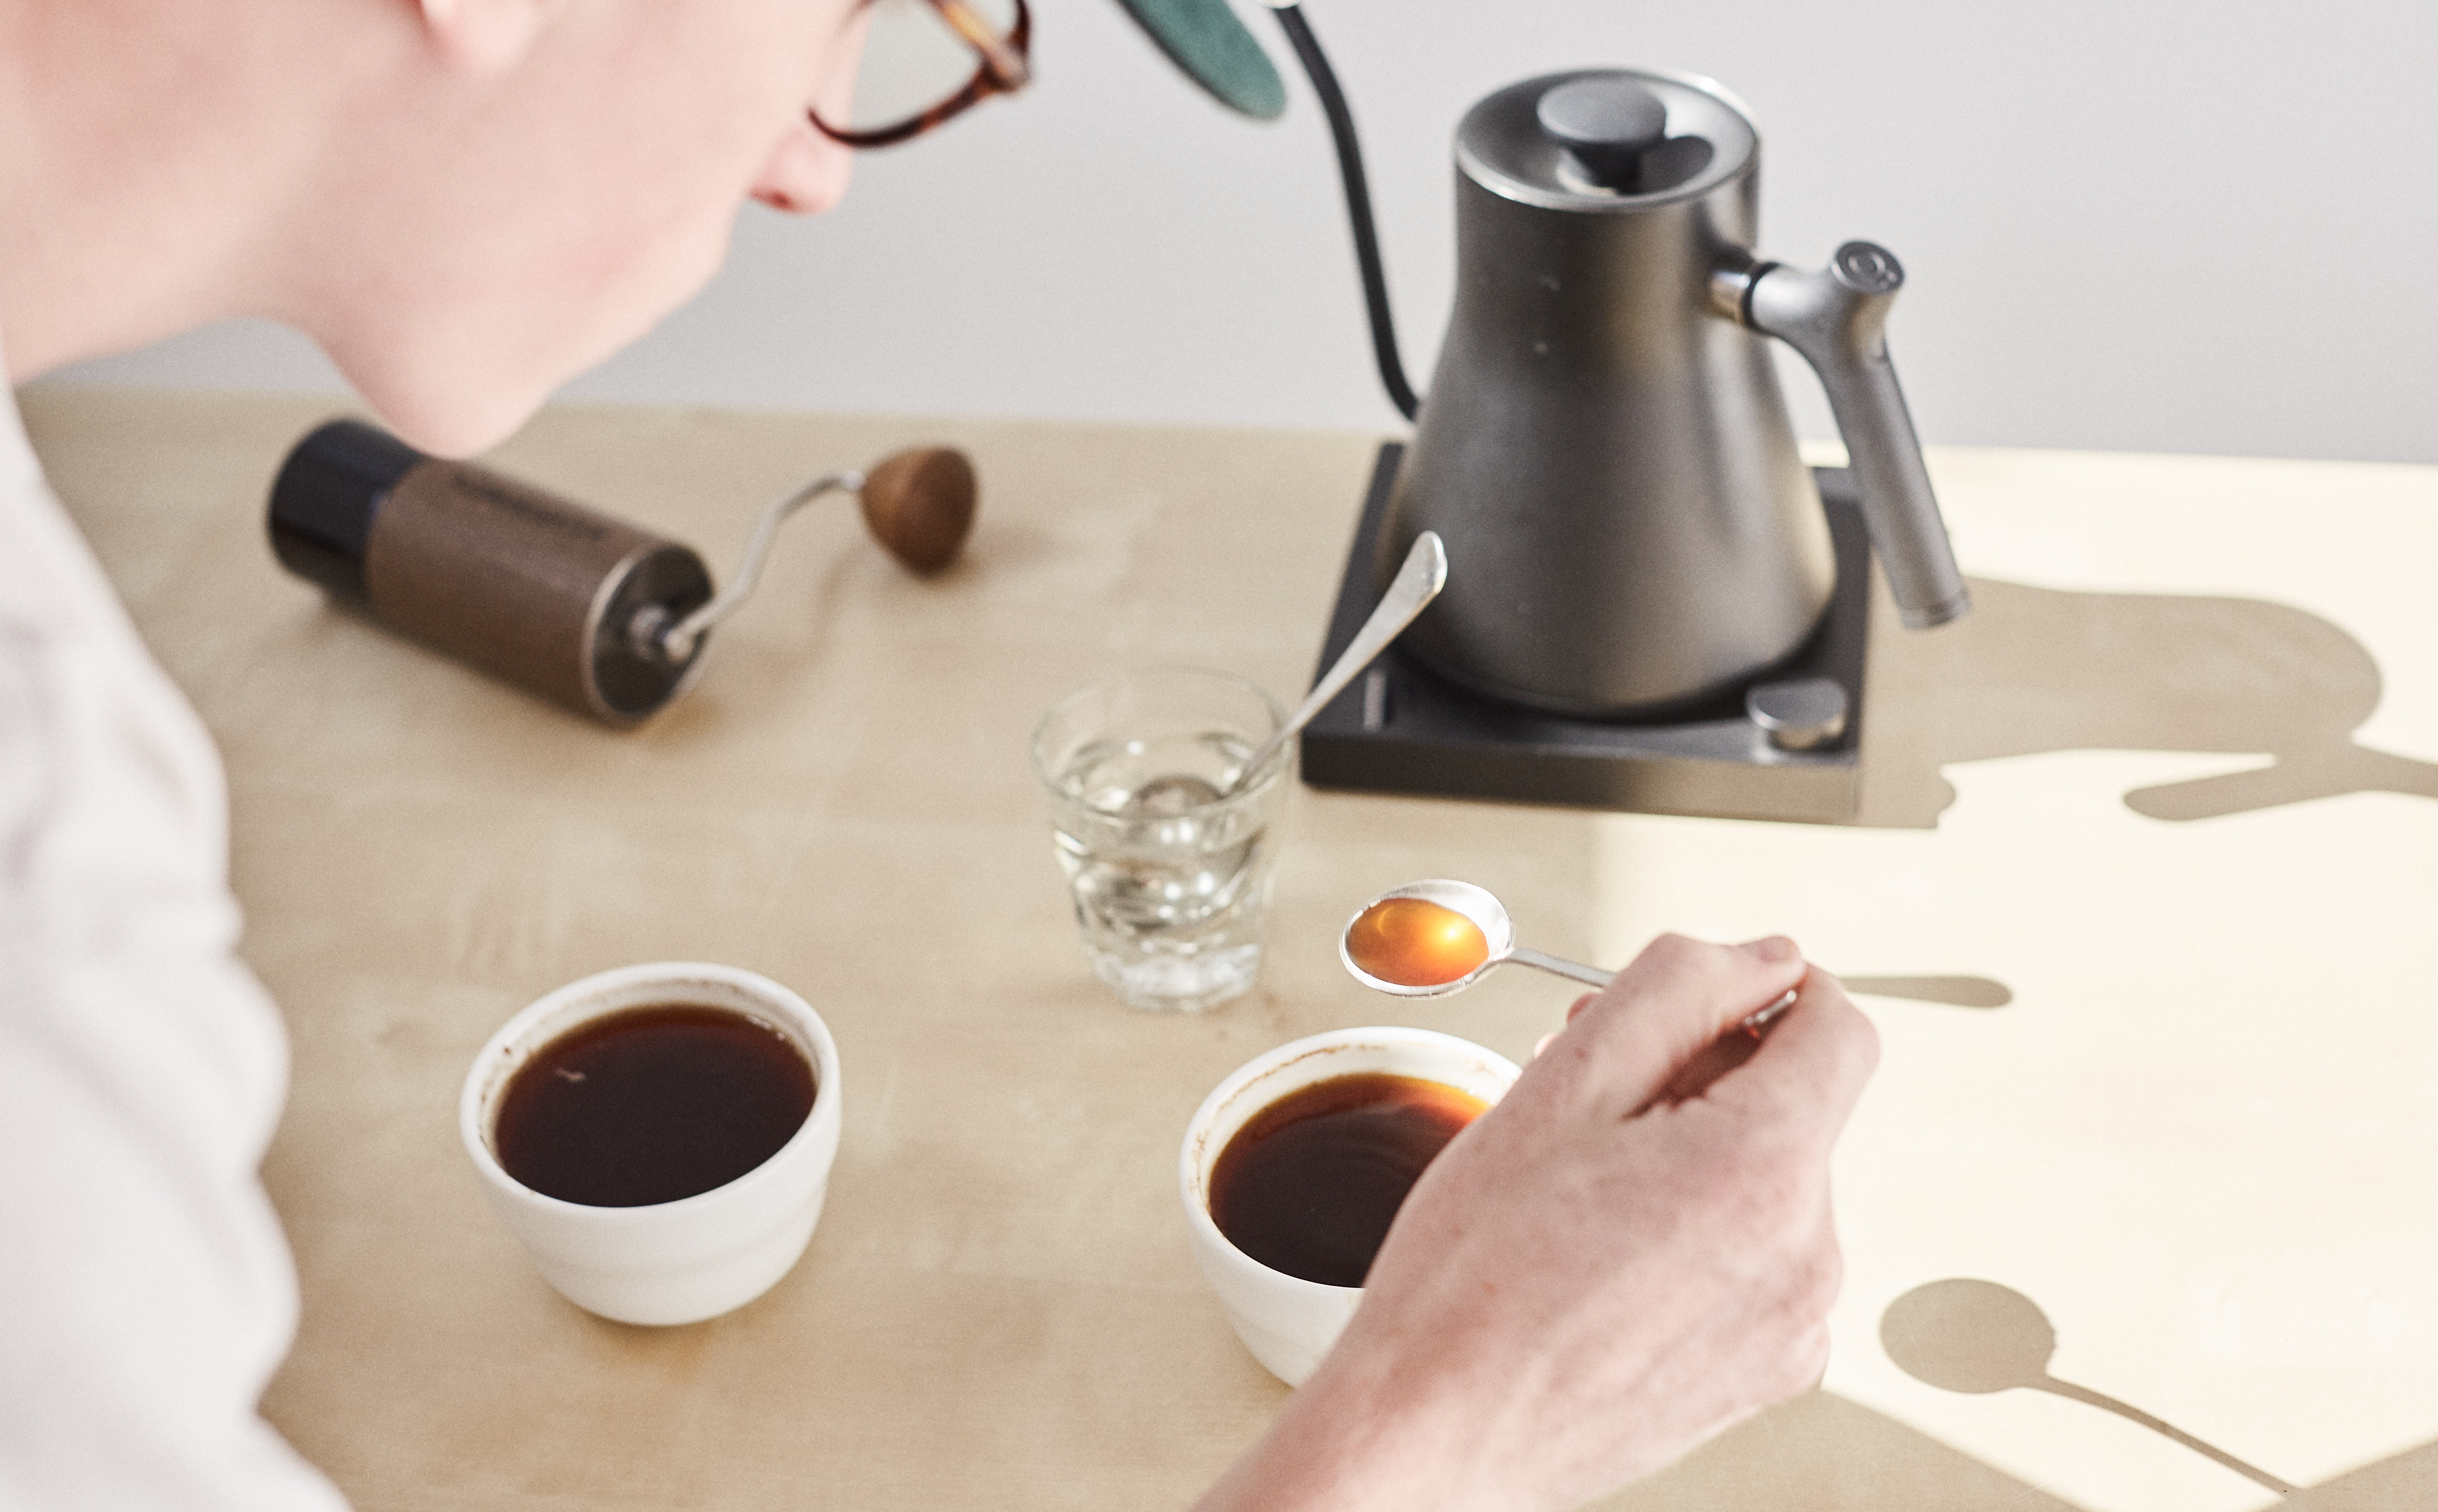 cupper tasting coffee from a spoon